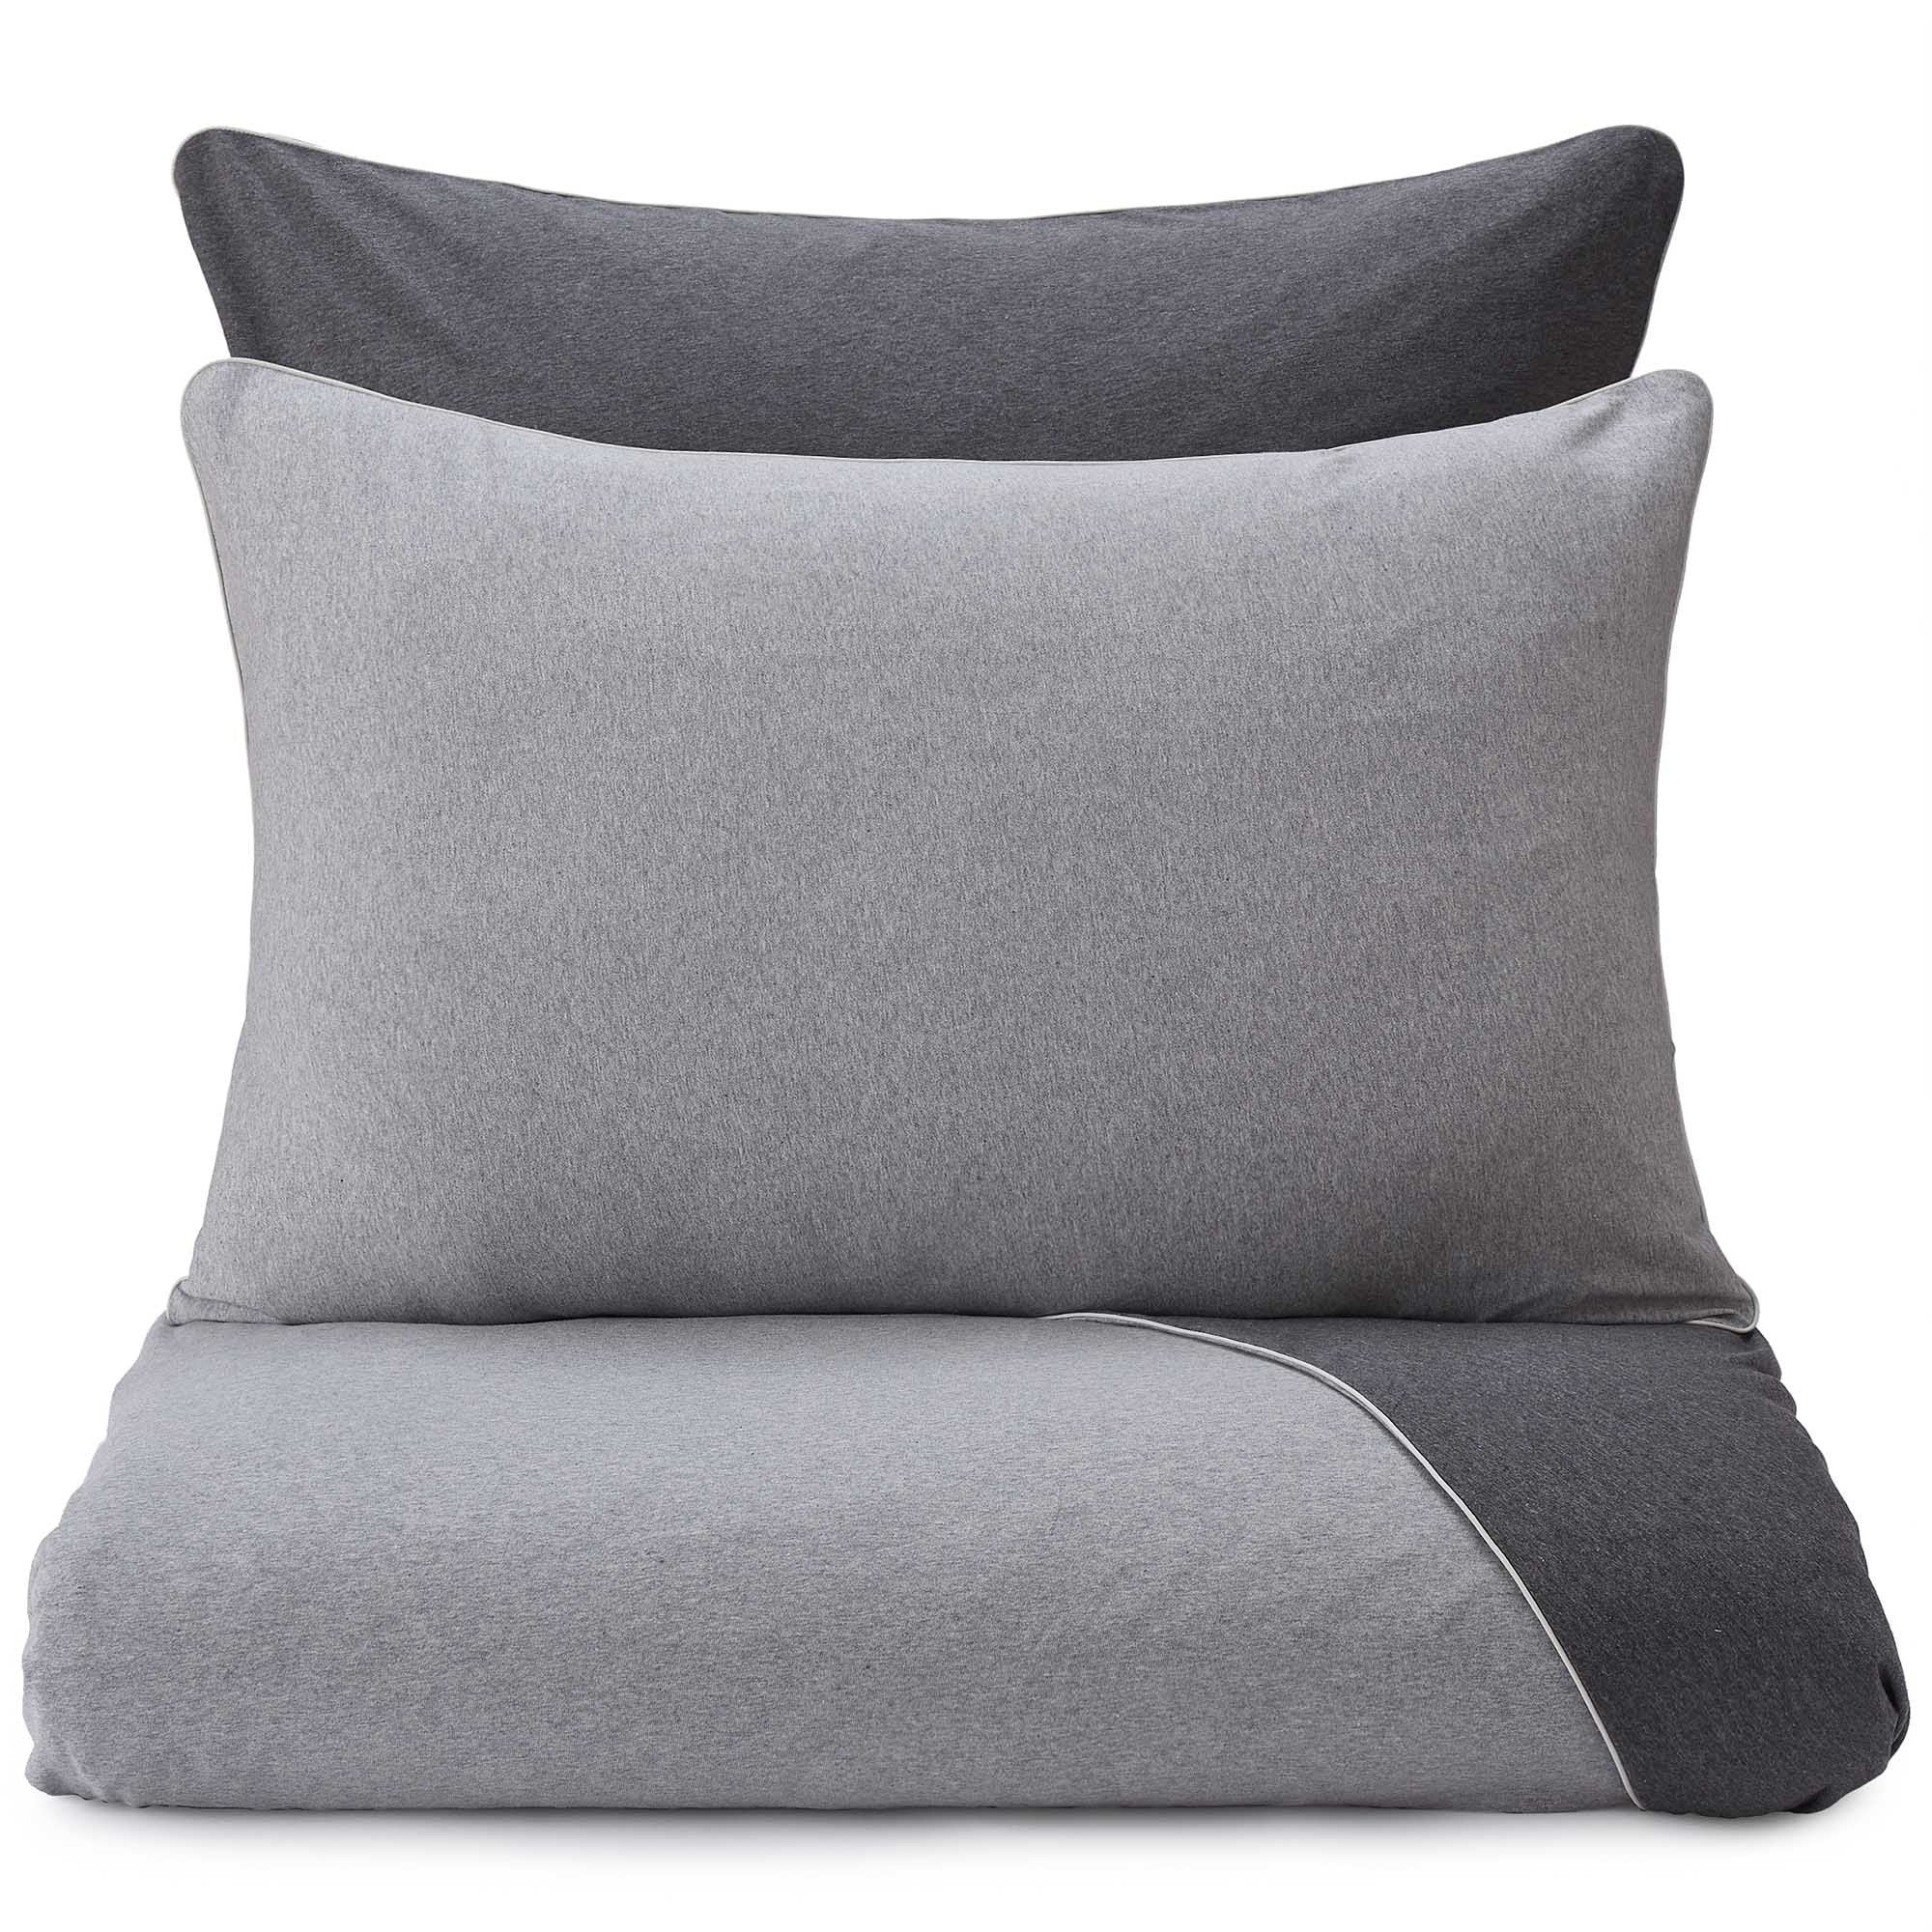 Coria duvet cover, light grey melange & charcoal melange & grey, 100% cotton